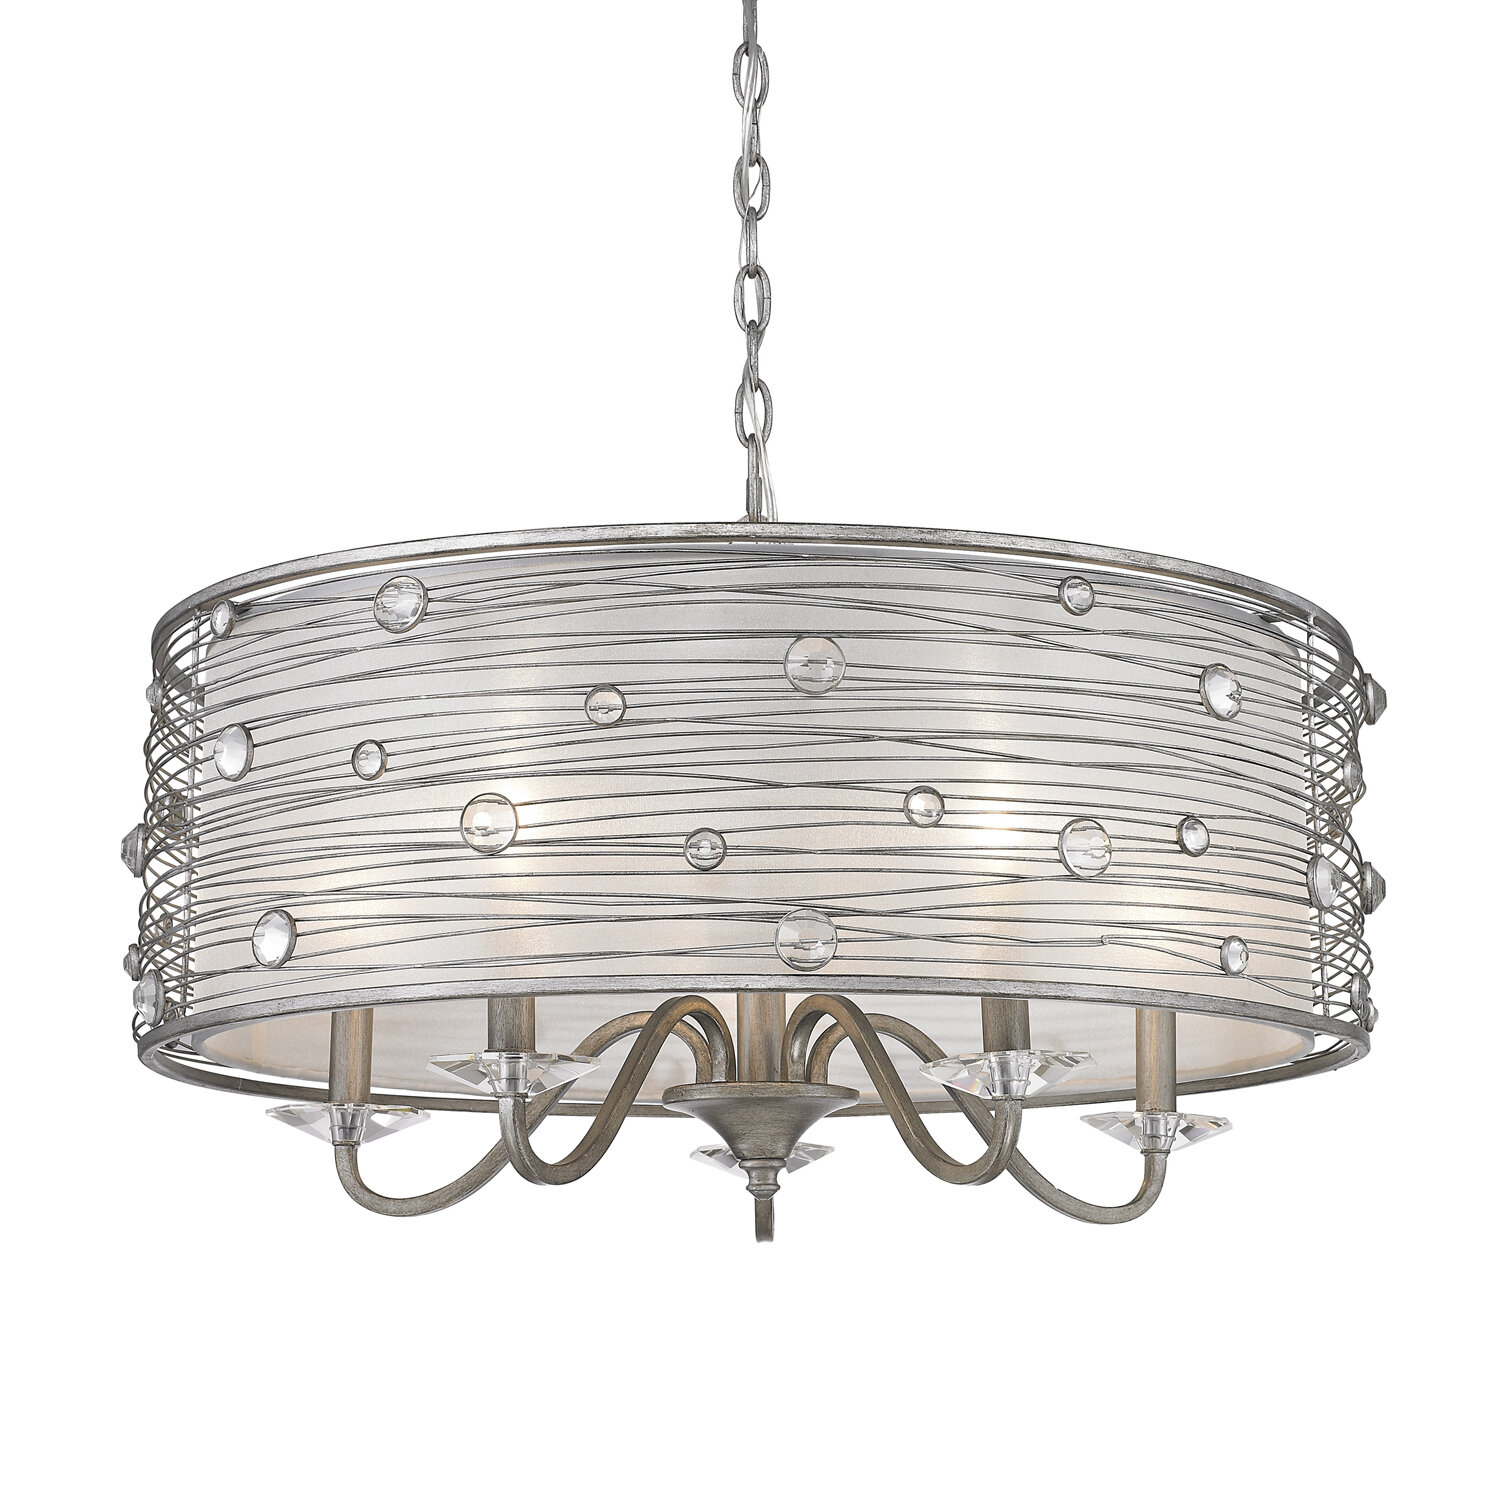 Hermione 5 Light Drum Chandelier Intended For Buster 5 Light Drum Chandeliers (View 9 of 30)